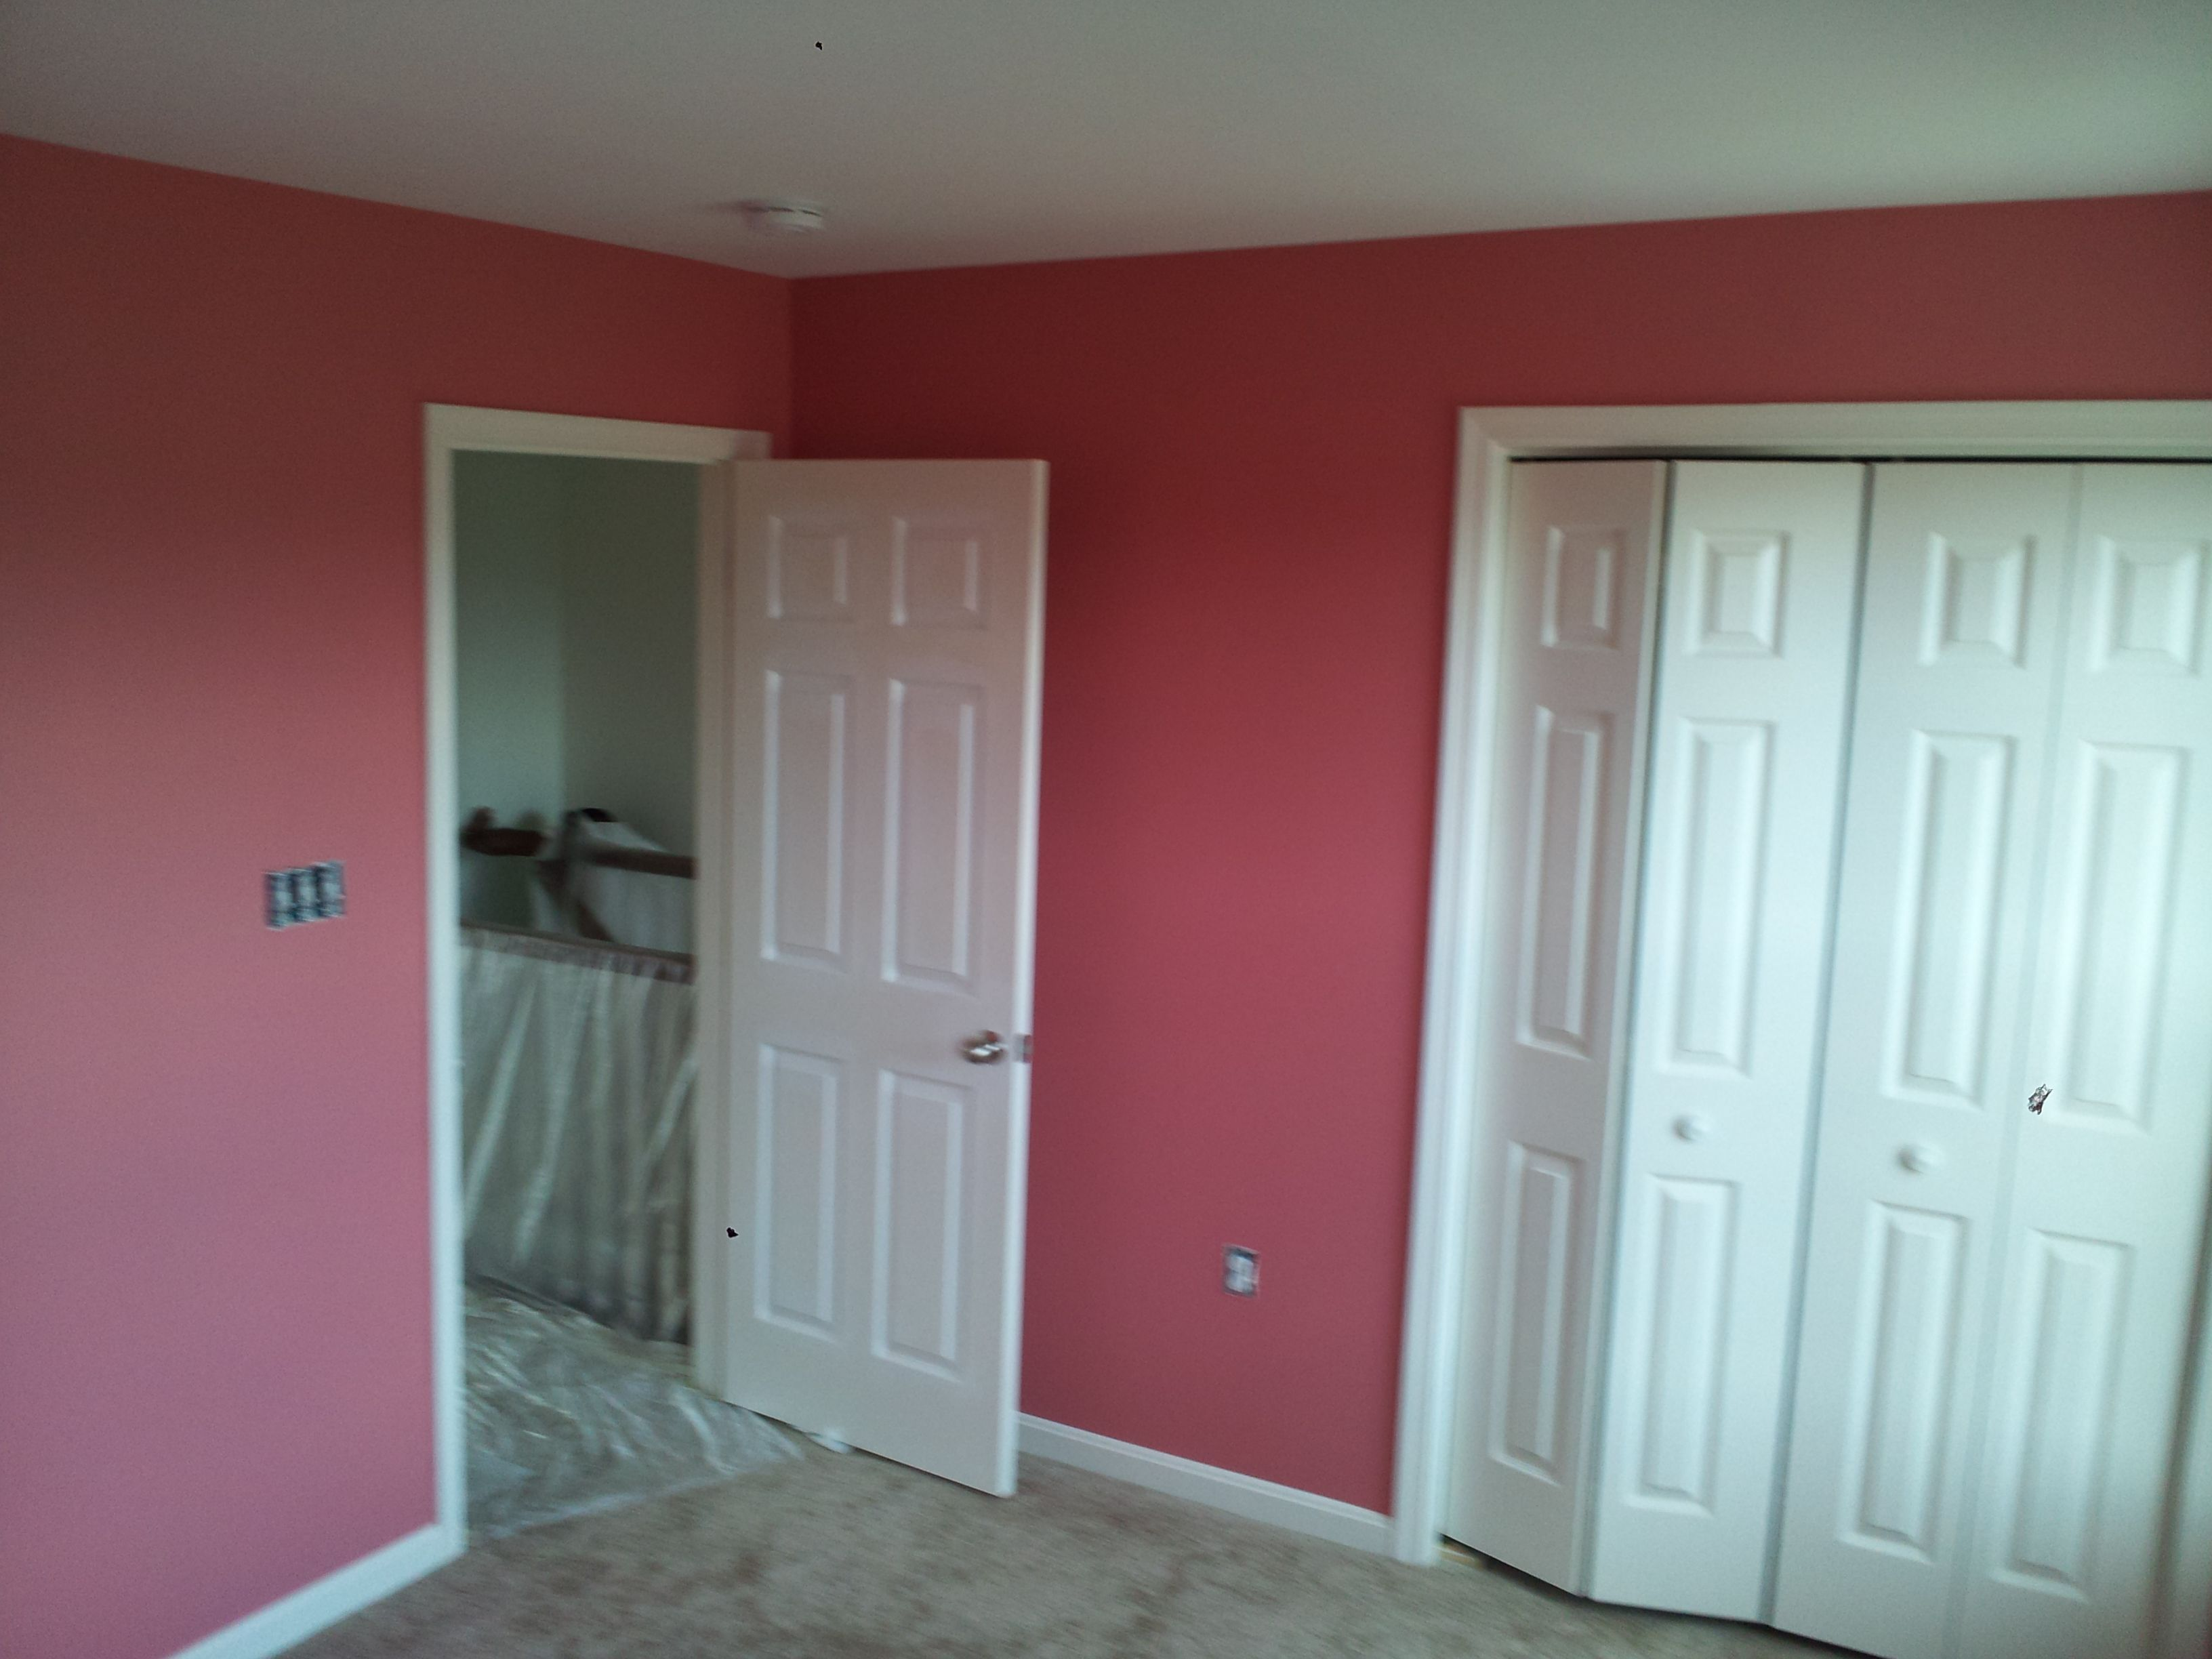 Memorable rose sw by sherwin williams applied